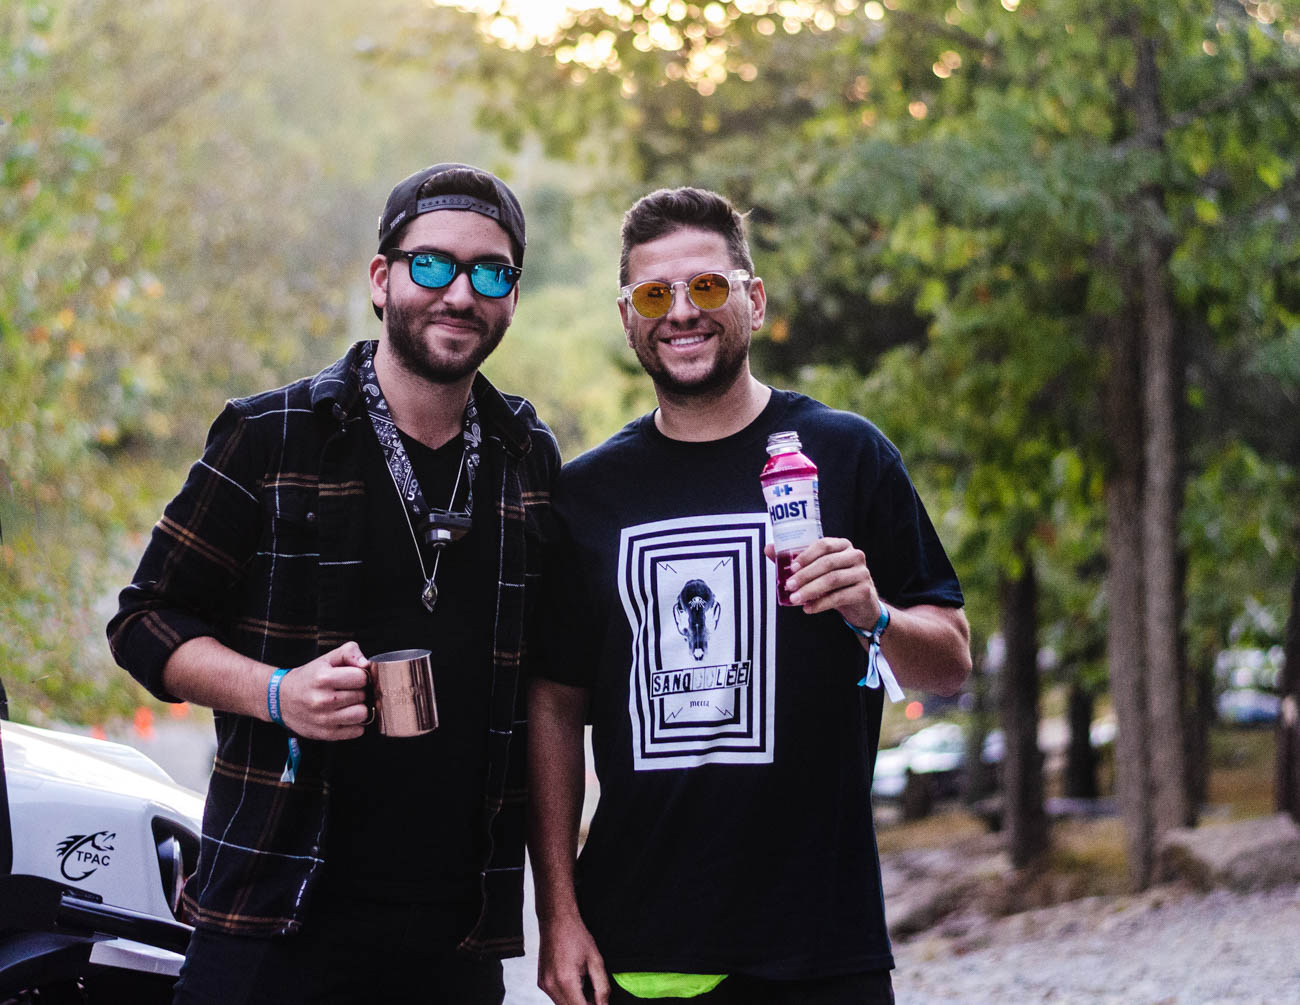 Brian Rubio and Mike Martian enjoying Sandoolee Music Festival while showing off some awesome shades / Image: Kellie Coleman // Published: 11.1.19